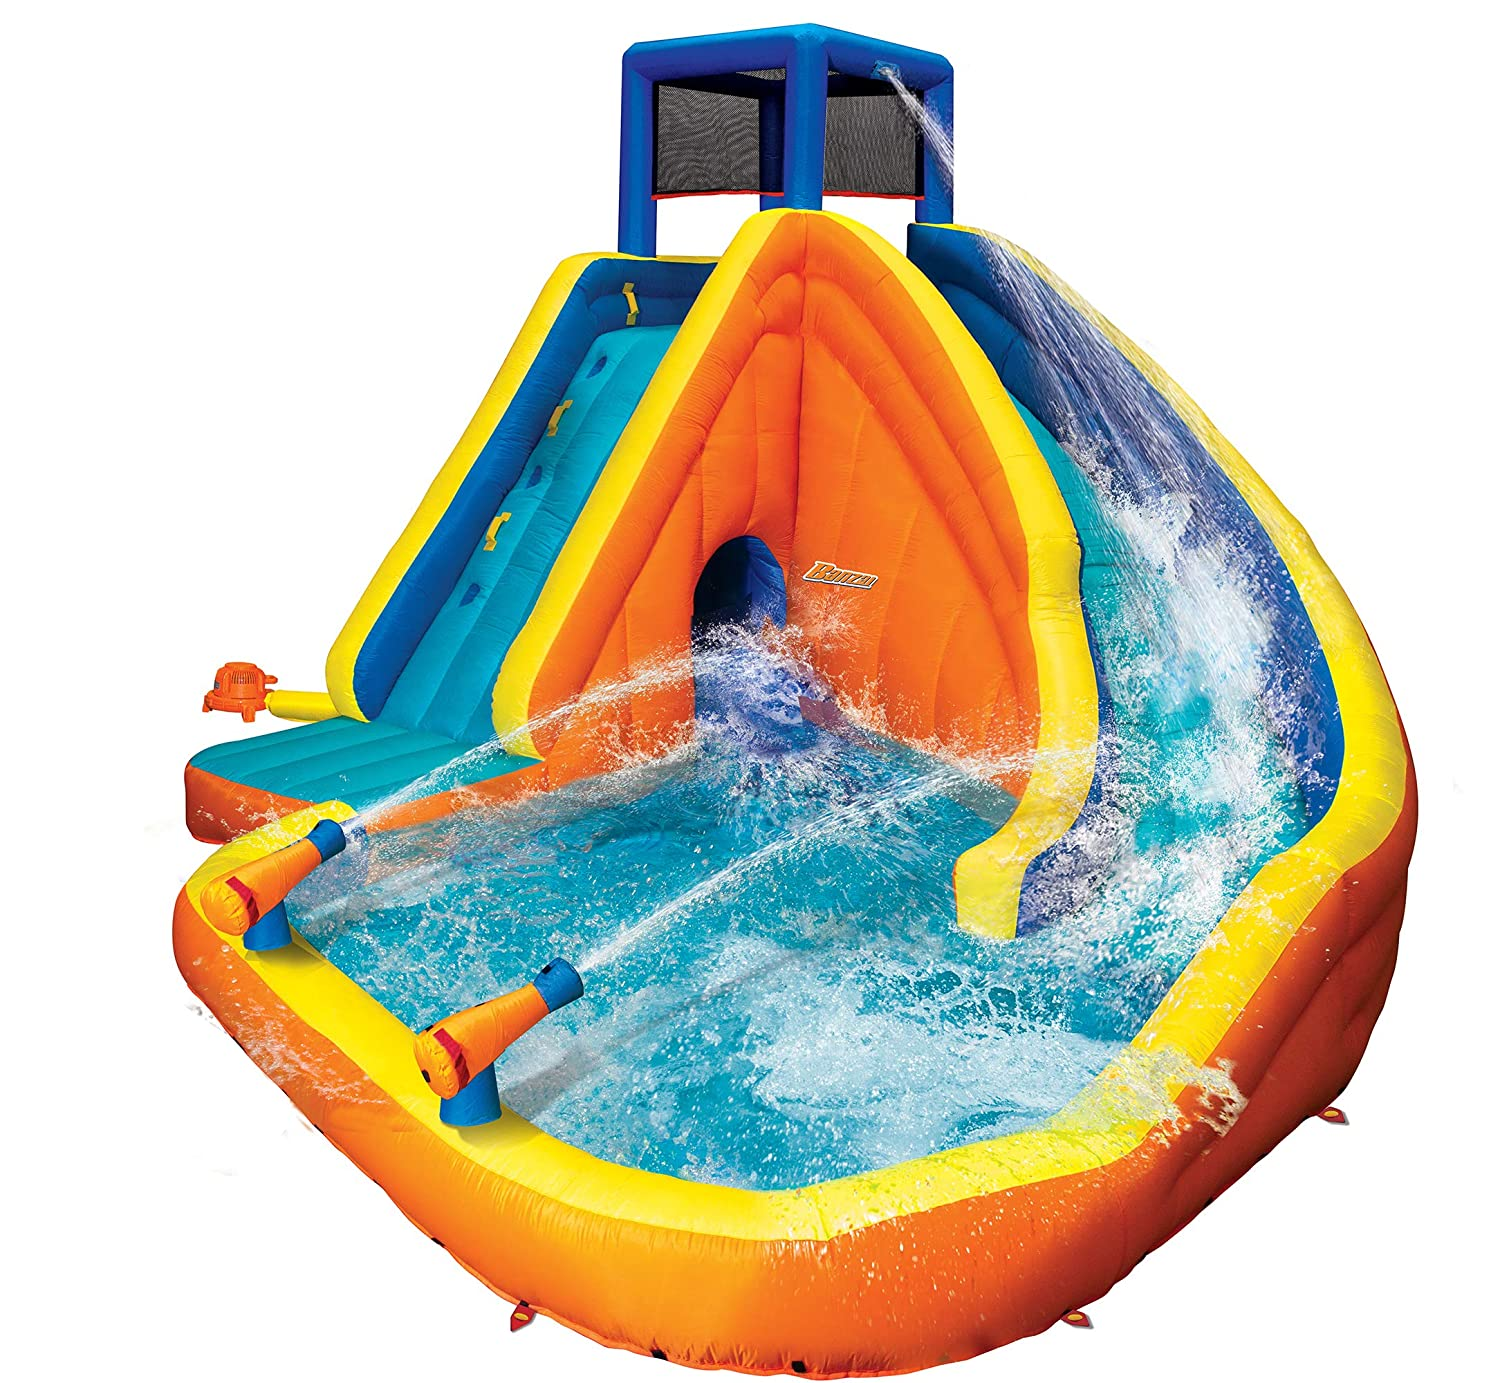 BANZAI 90494 Sidewinder Falls Inflatable Water Slide with Tunnel Ramp Slide